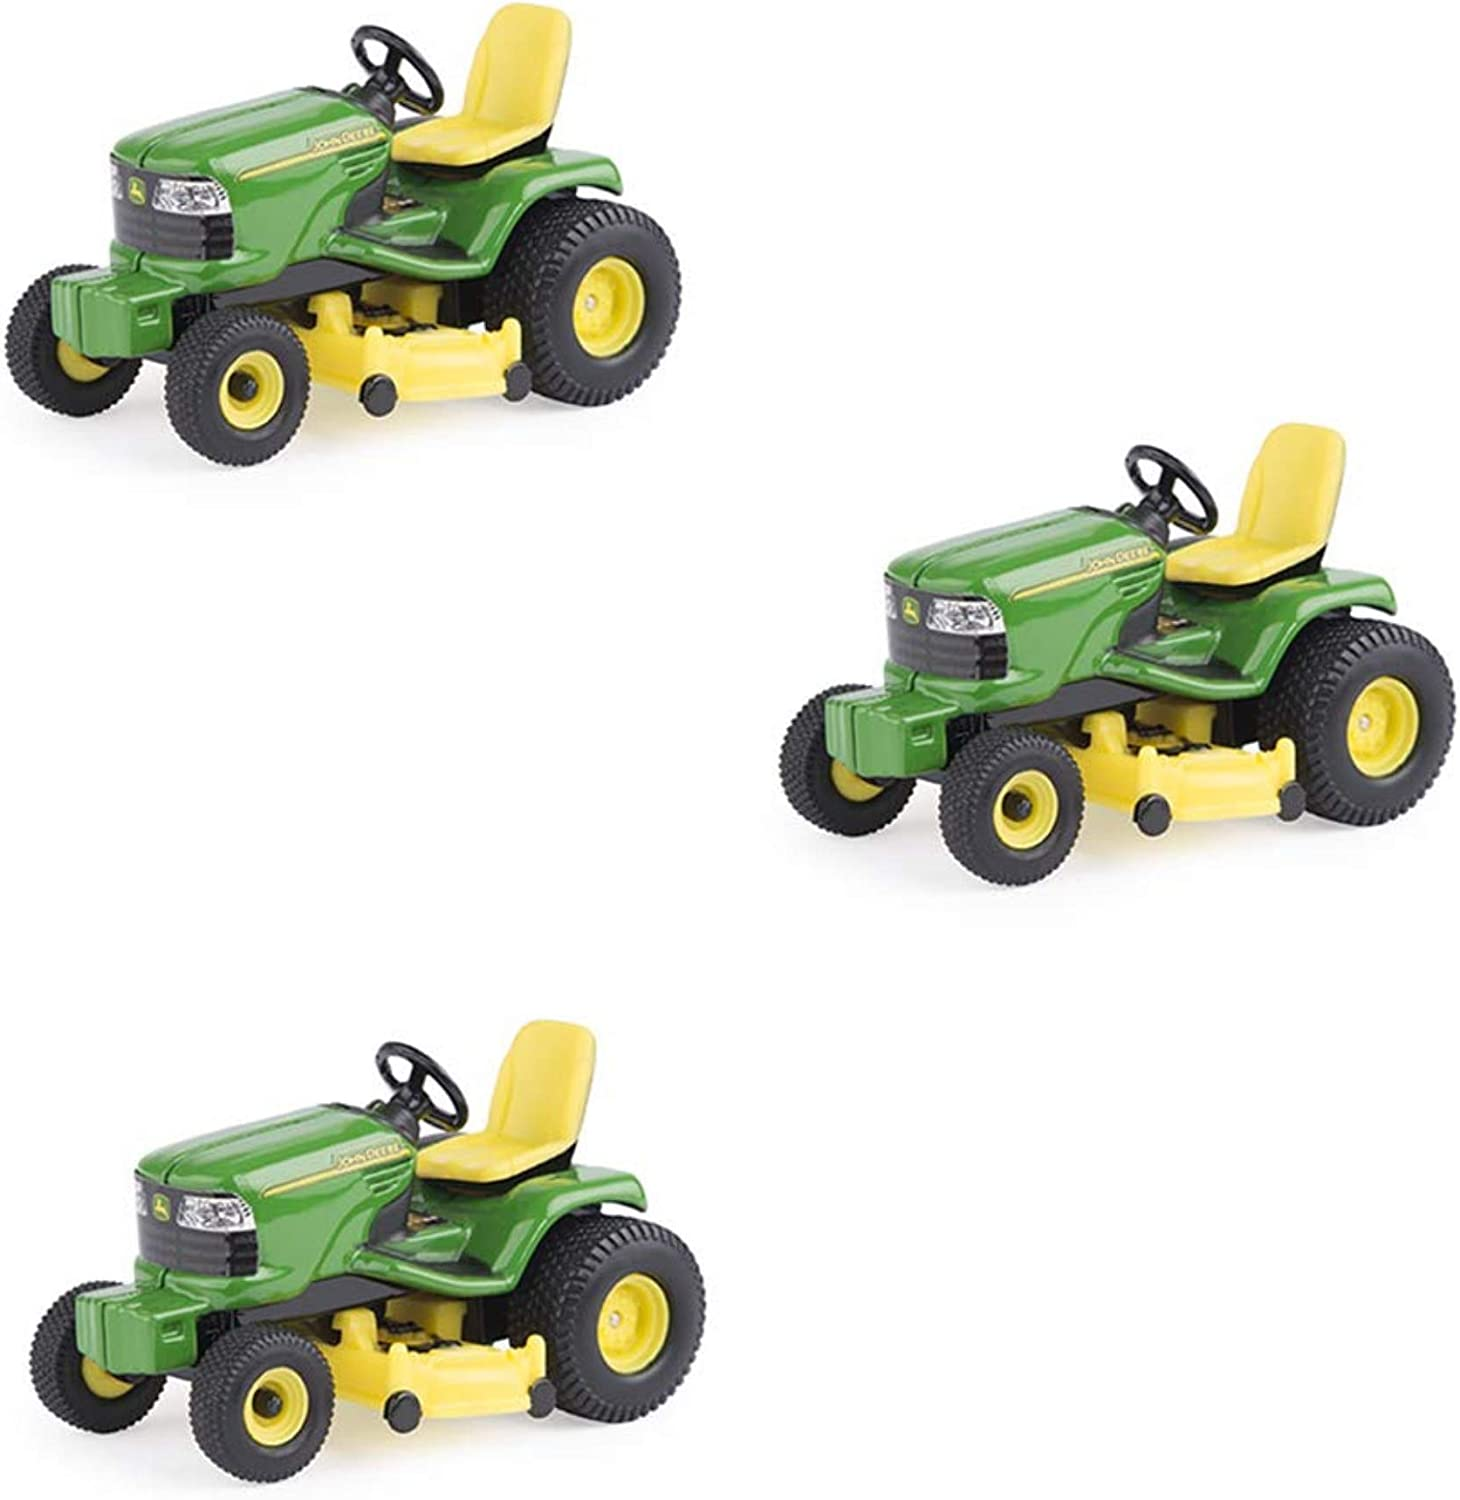 John Deere Lawn Tractor 1/32 Scale, Green, Yellow